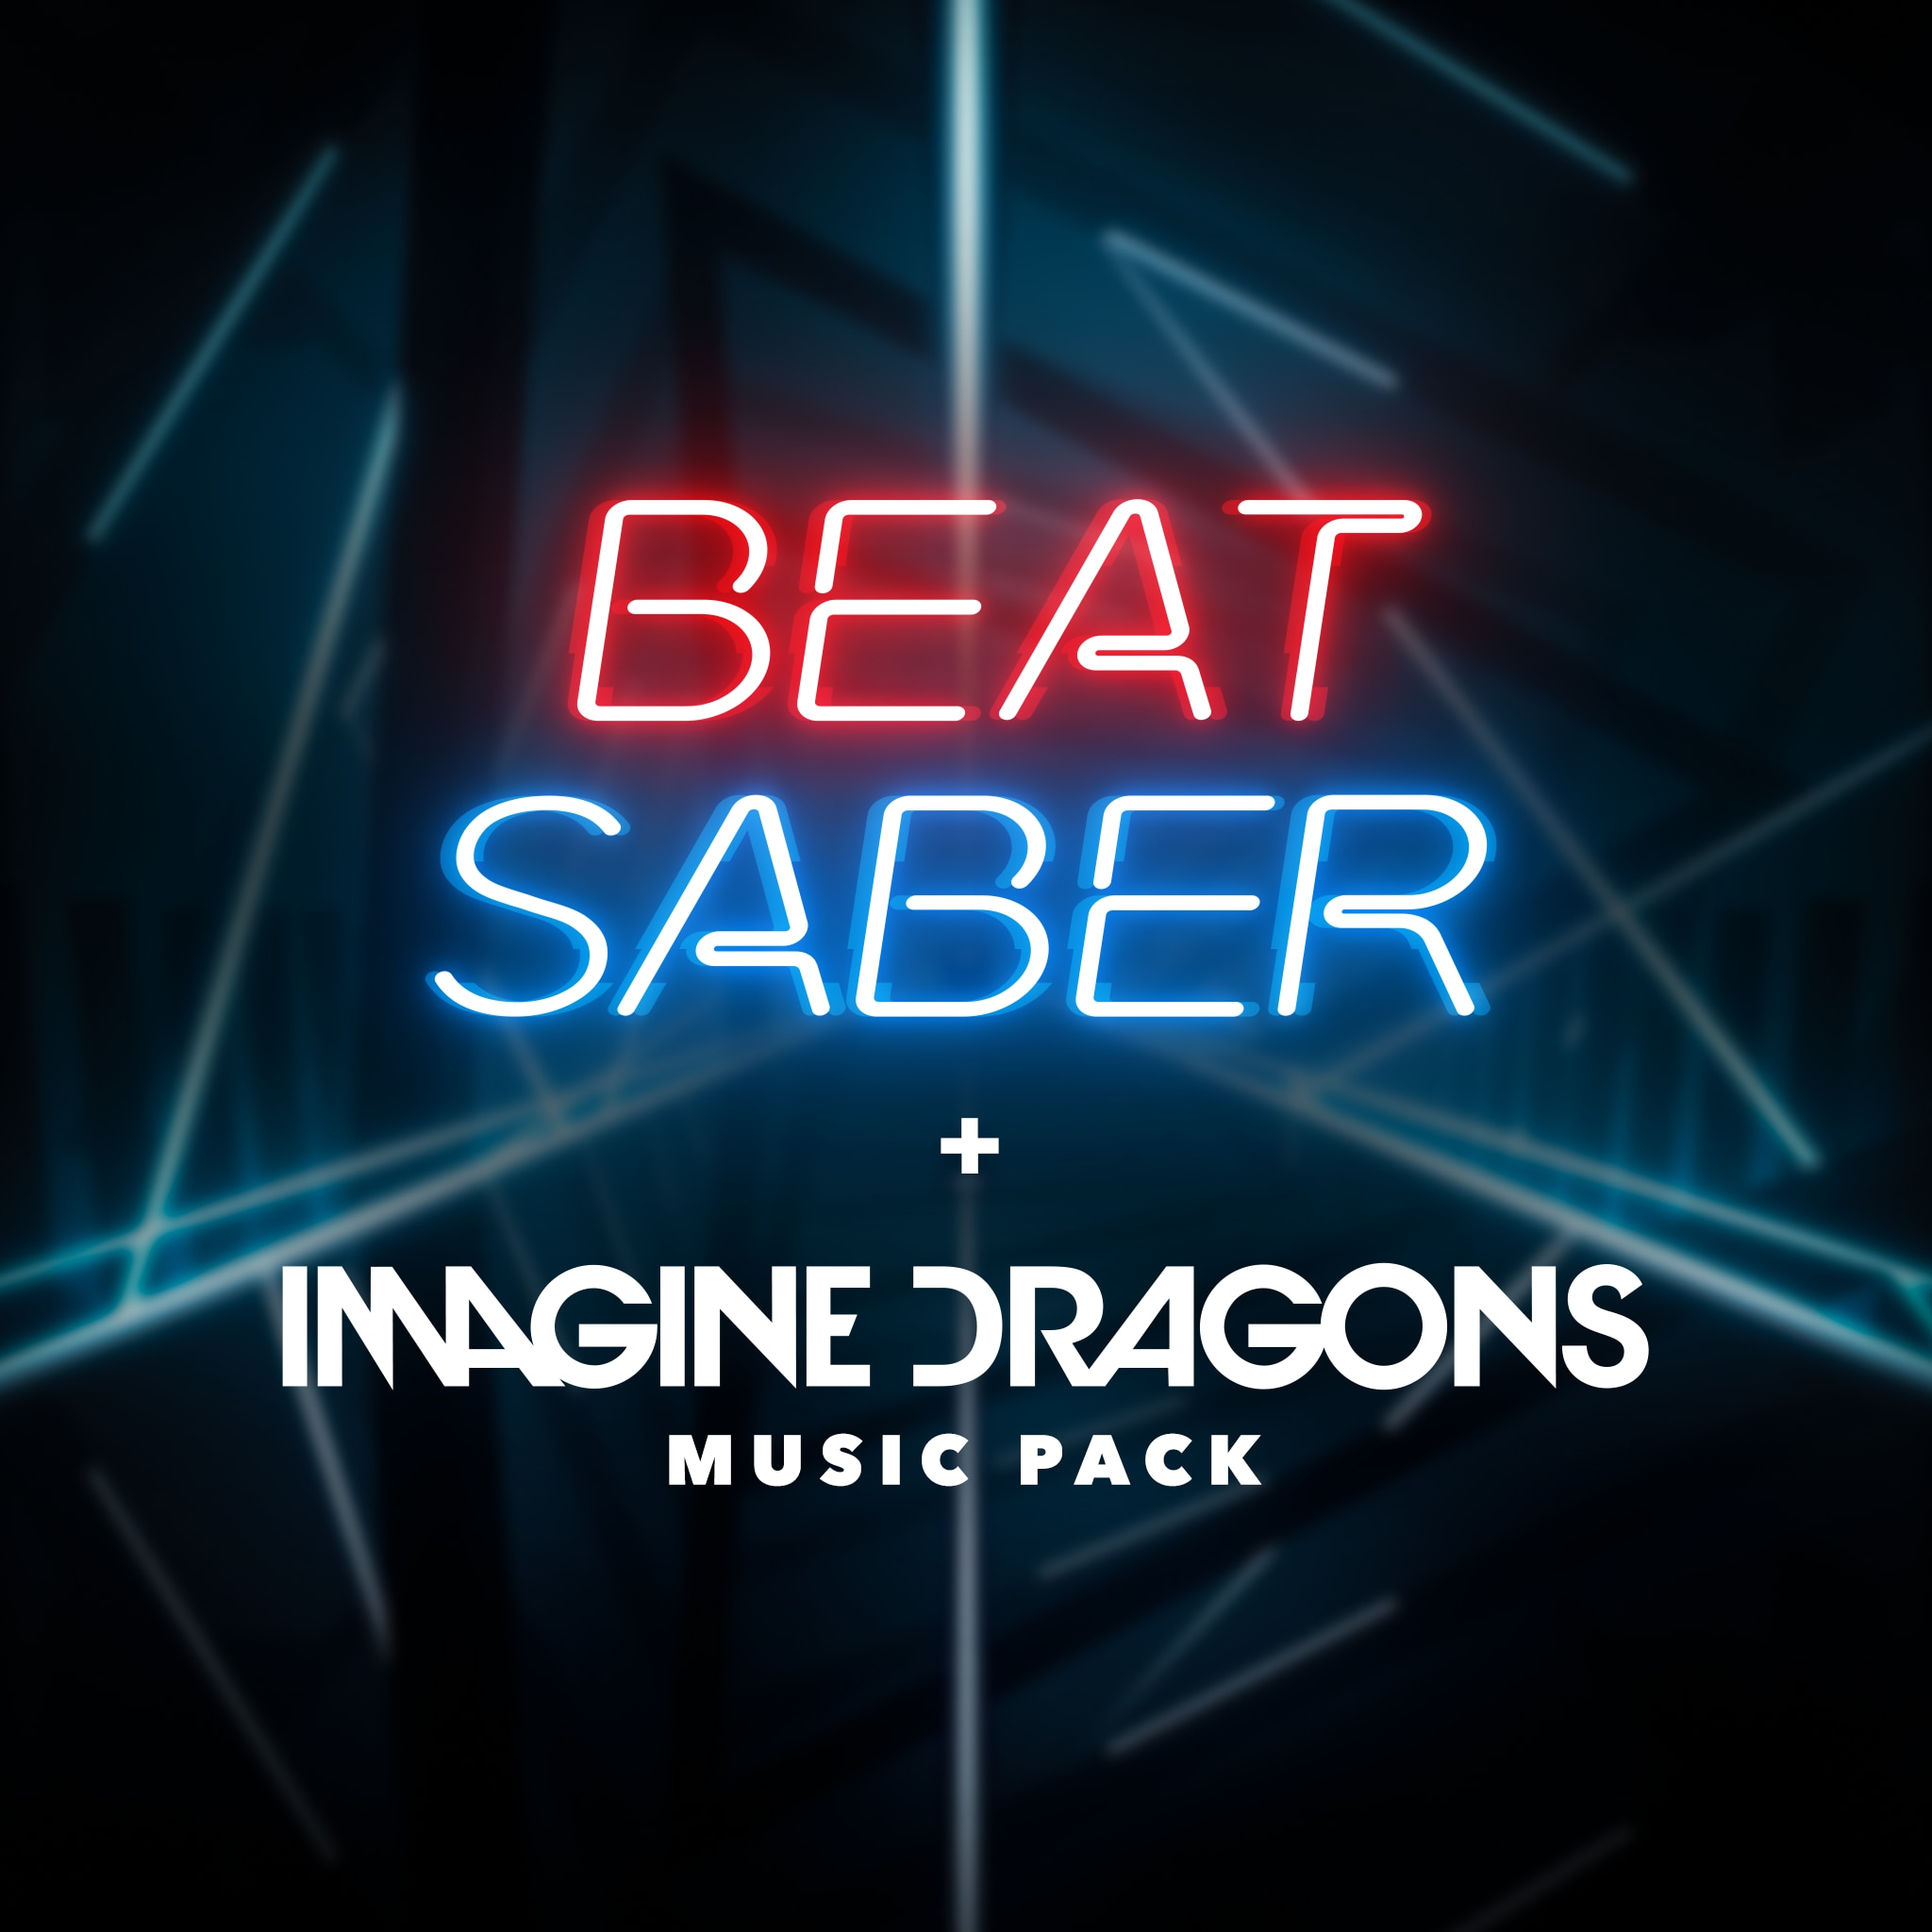 Beat Saber + Imagine Dragons Music Pack